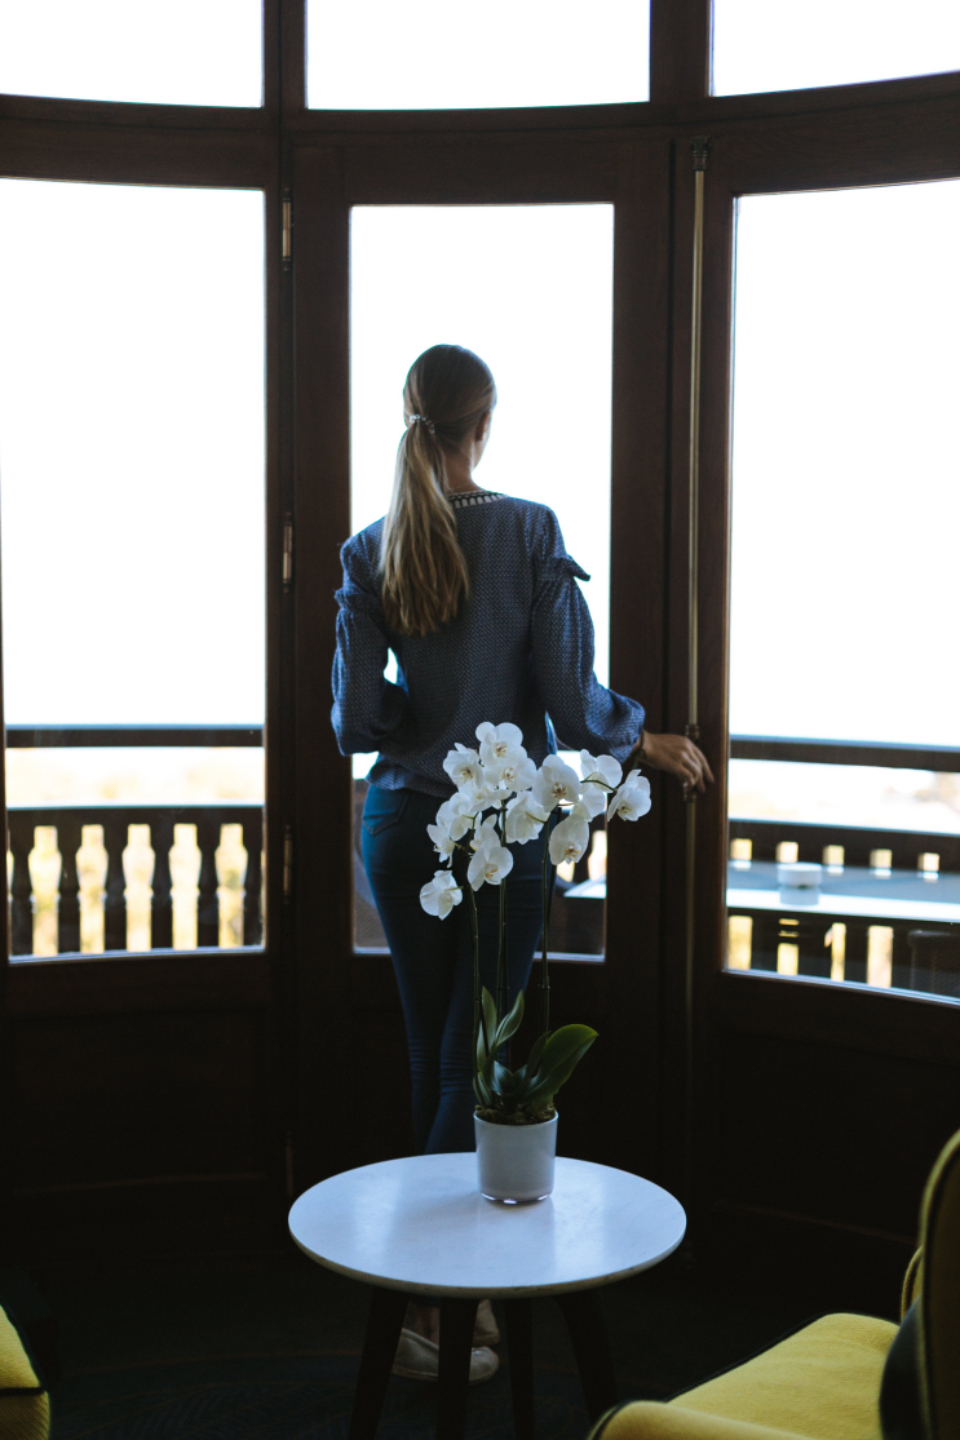 orchid woman window ponytail female plant chair view thoughtful scene horizon sight hotel trip